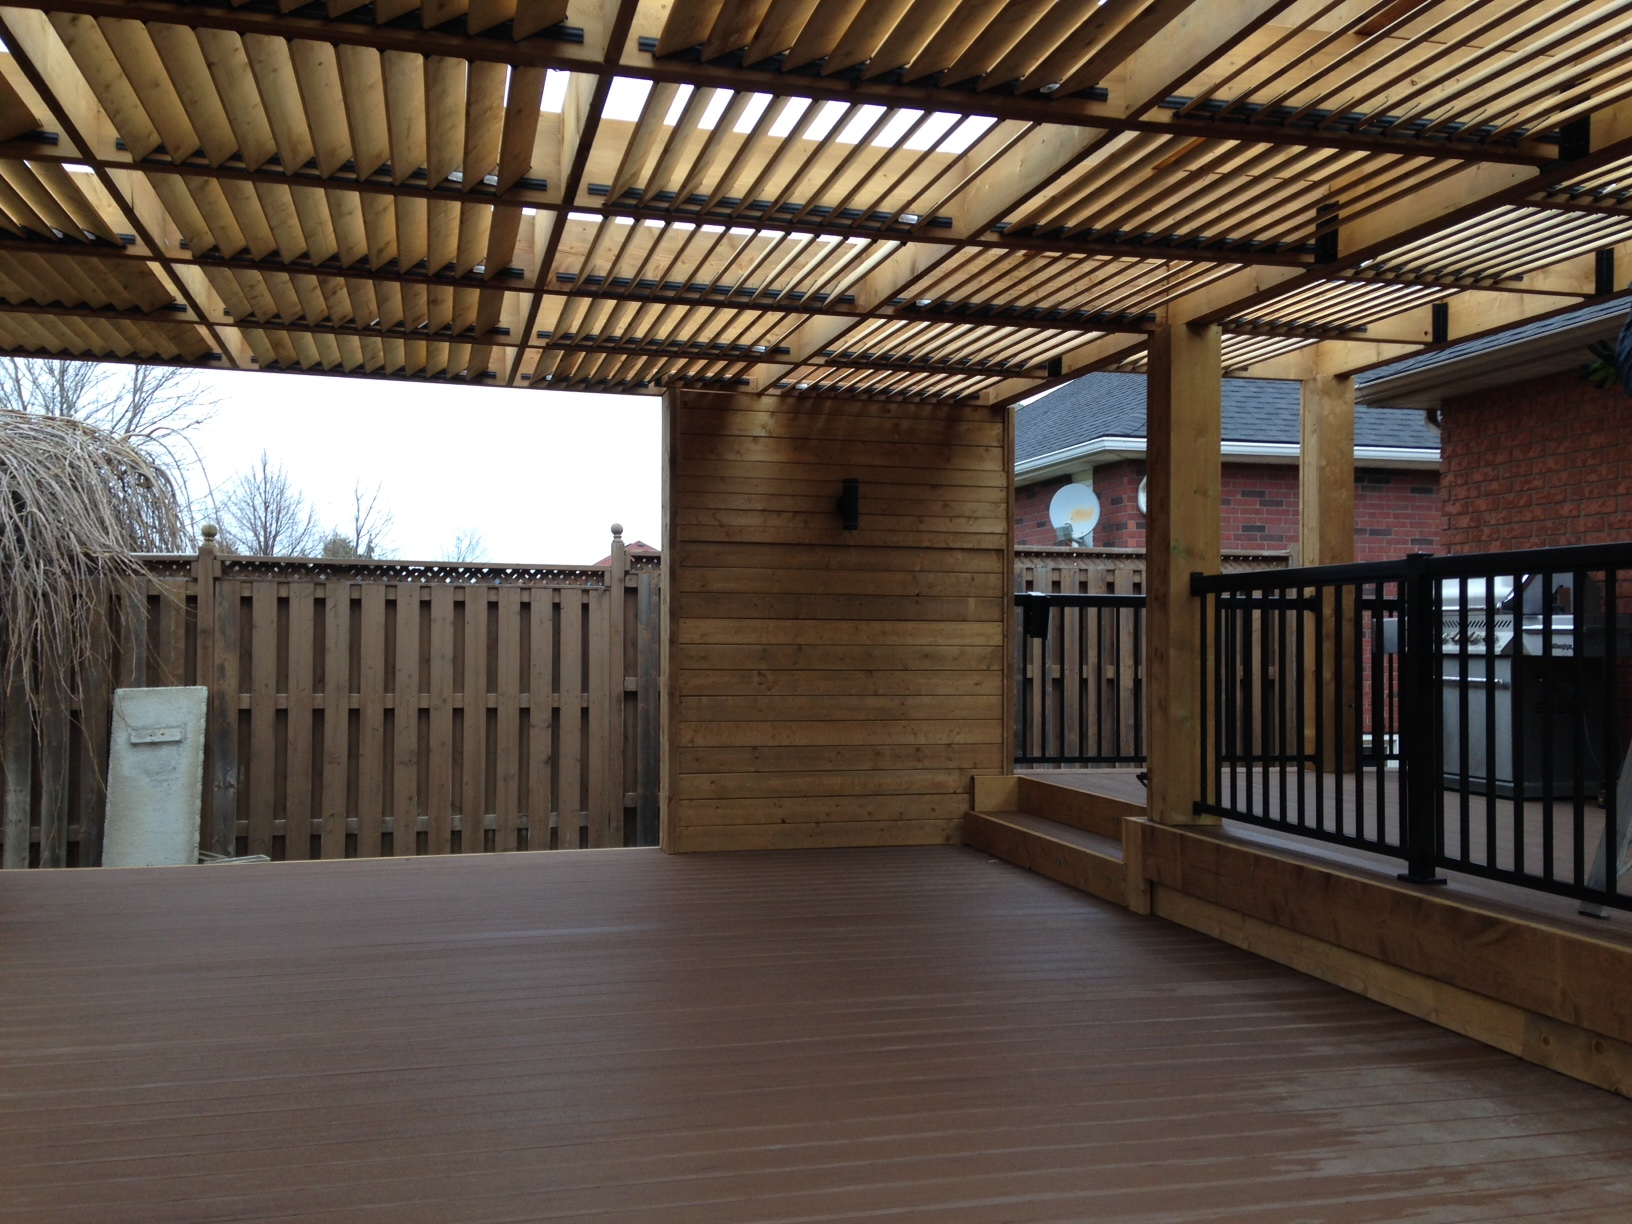 Wood accent walls and louvered wood pergola